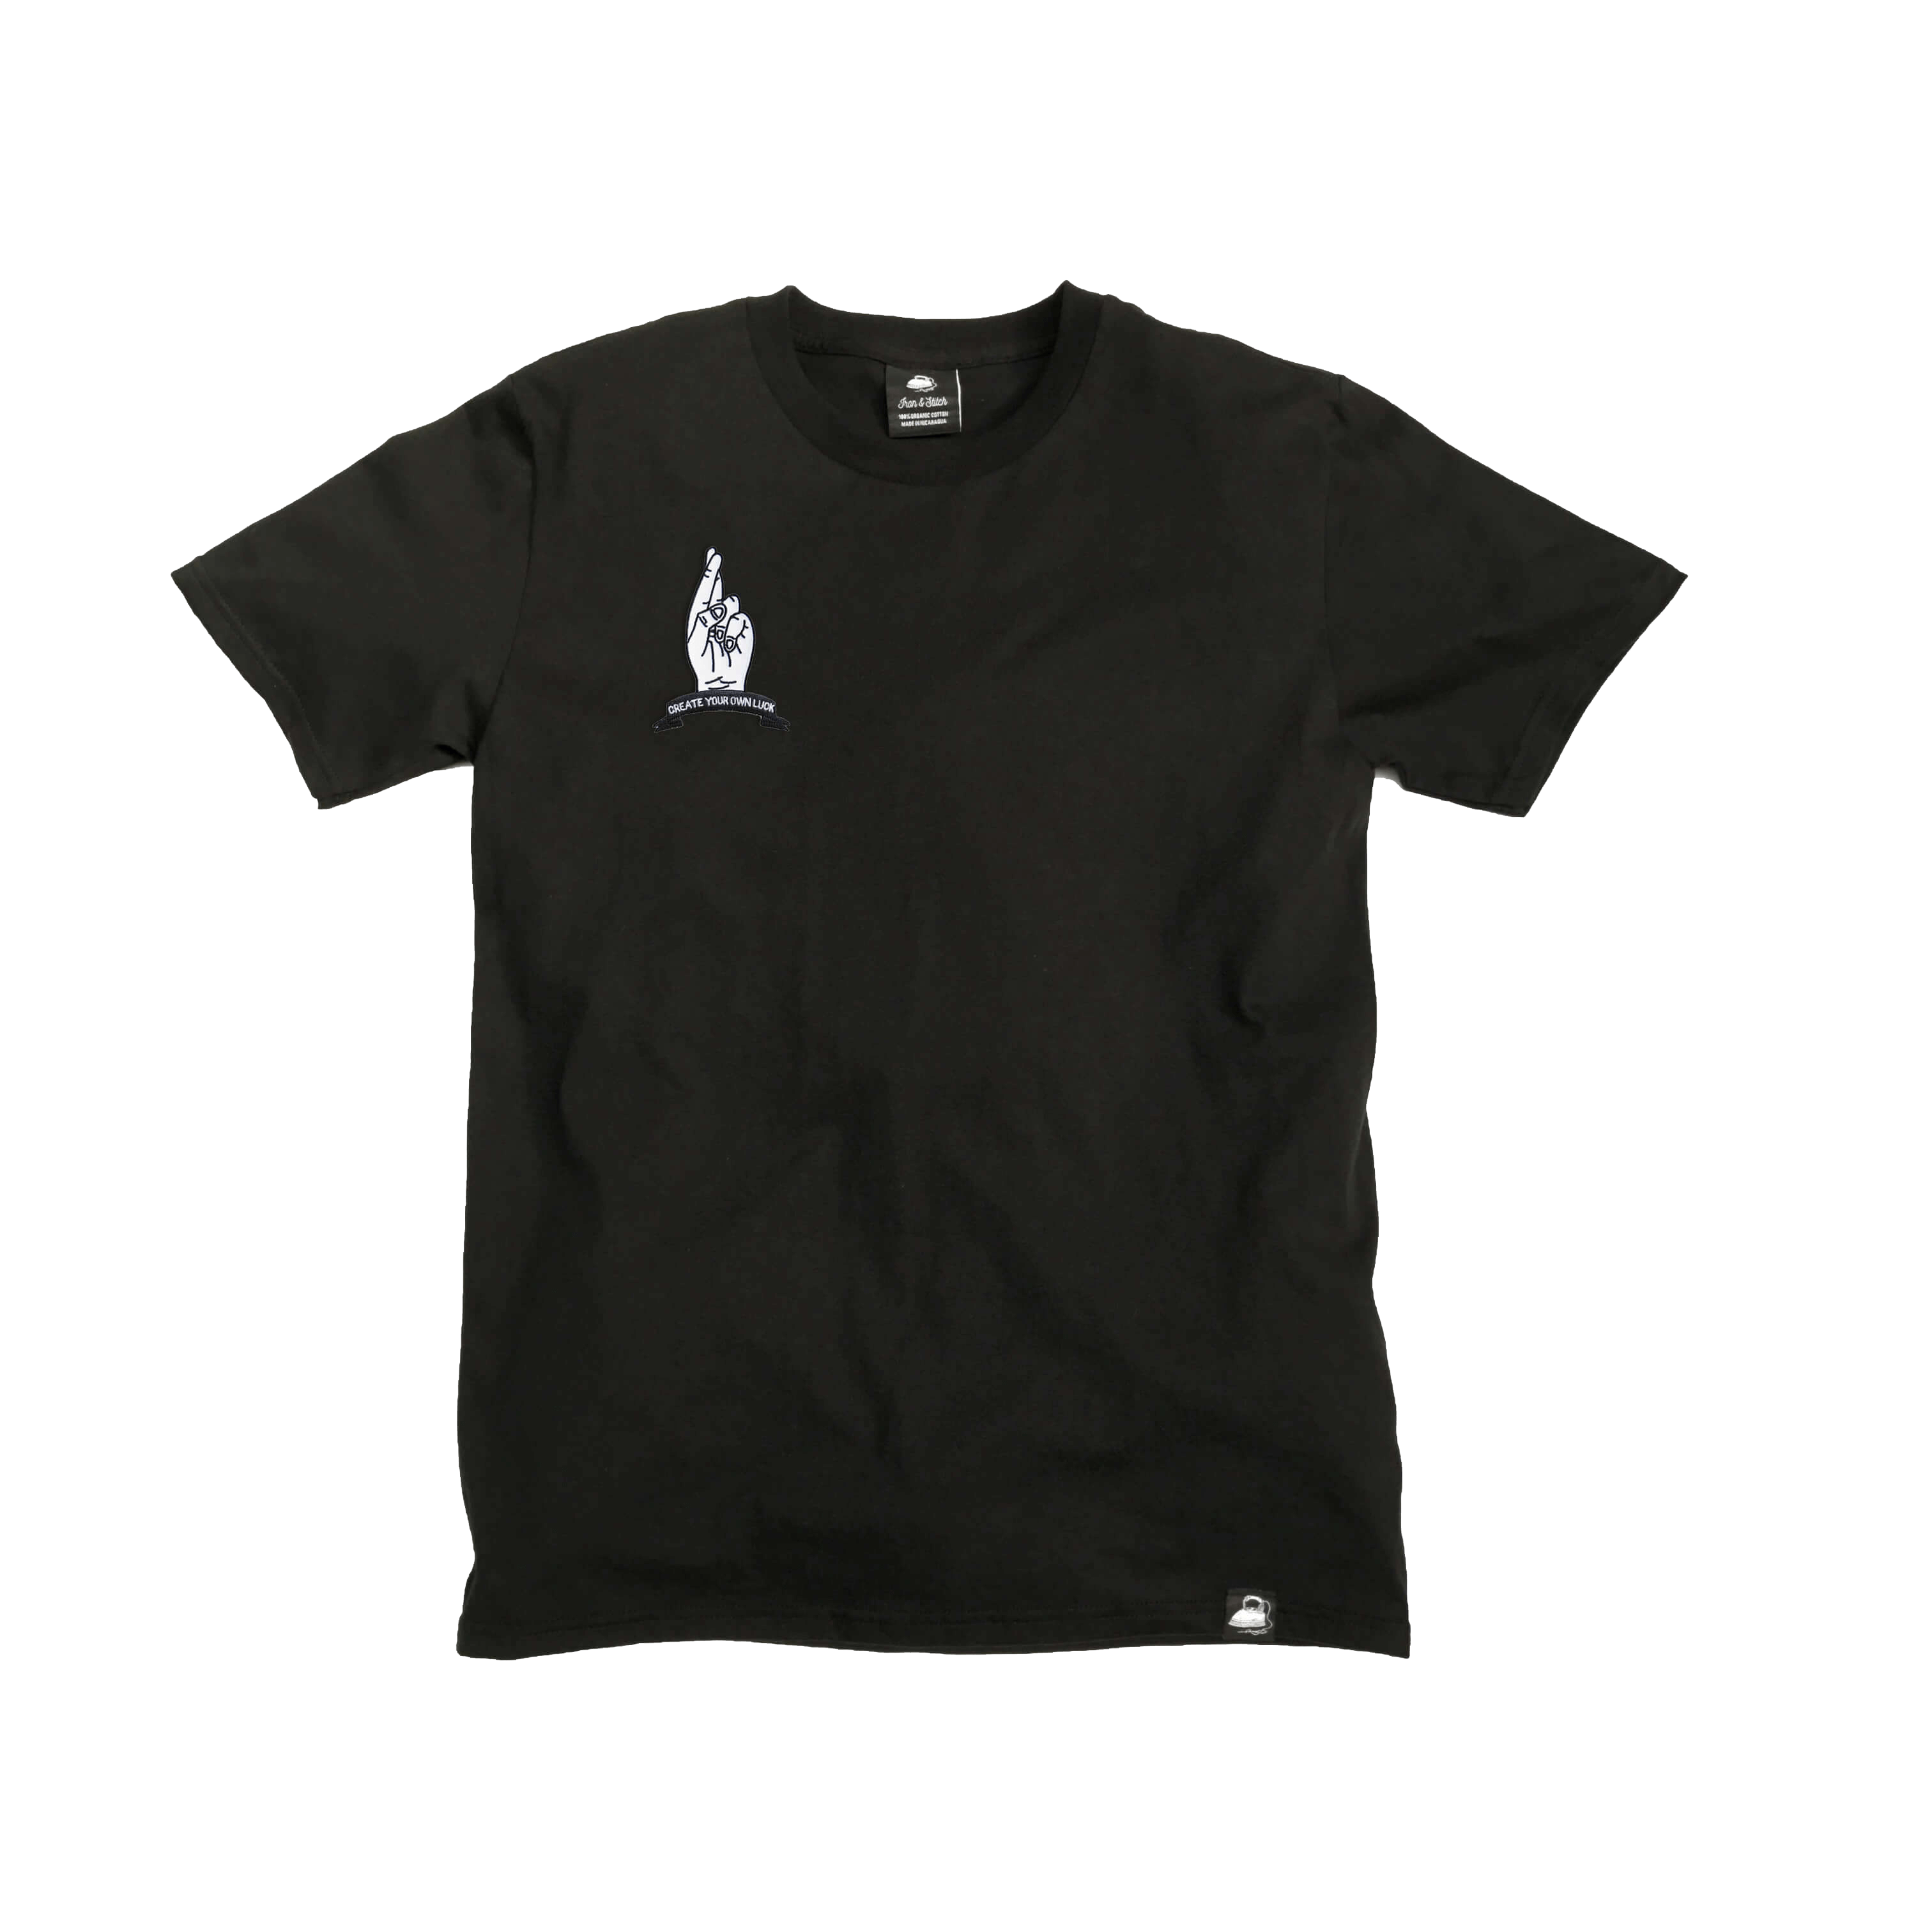 Black Organic Cotton Tee + Create Your Own Luck Patch (R) - Iron & Stitch